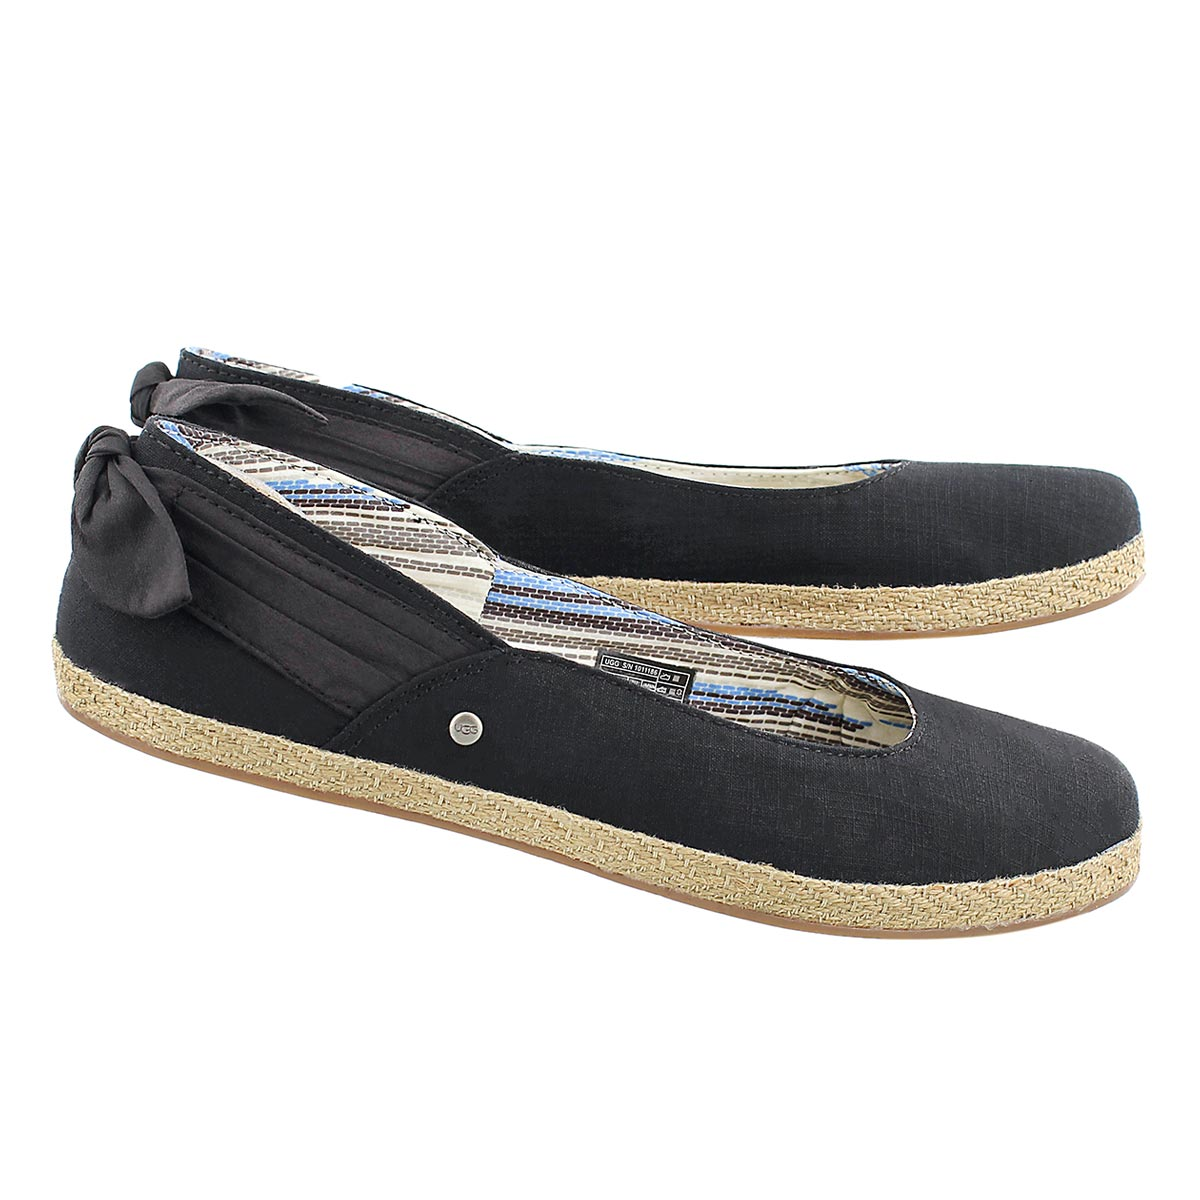 Lds Perrie black slip on espadrilles